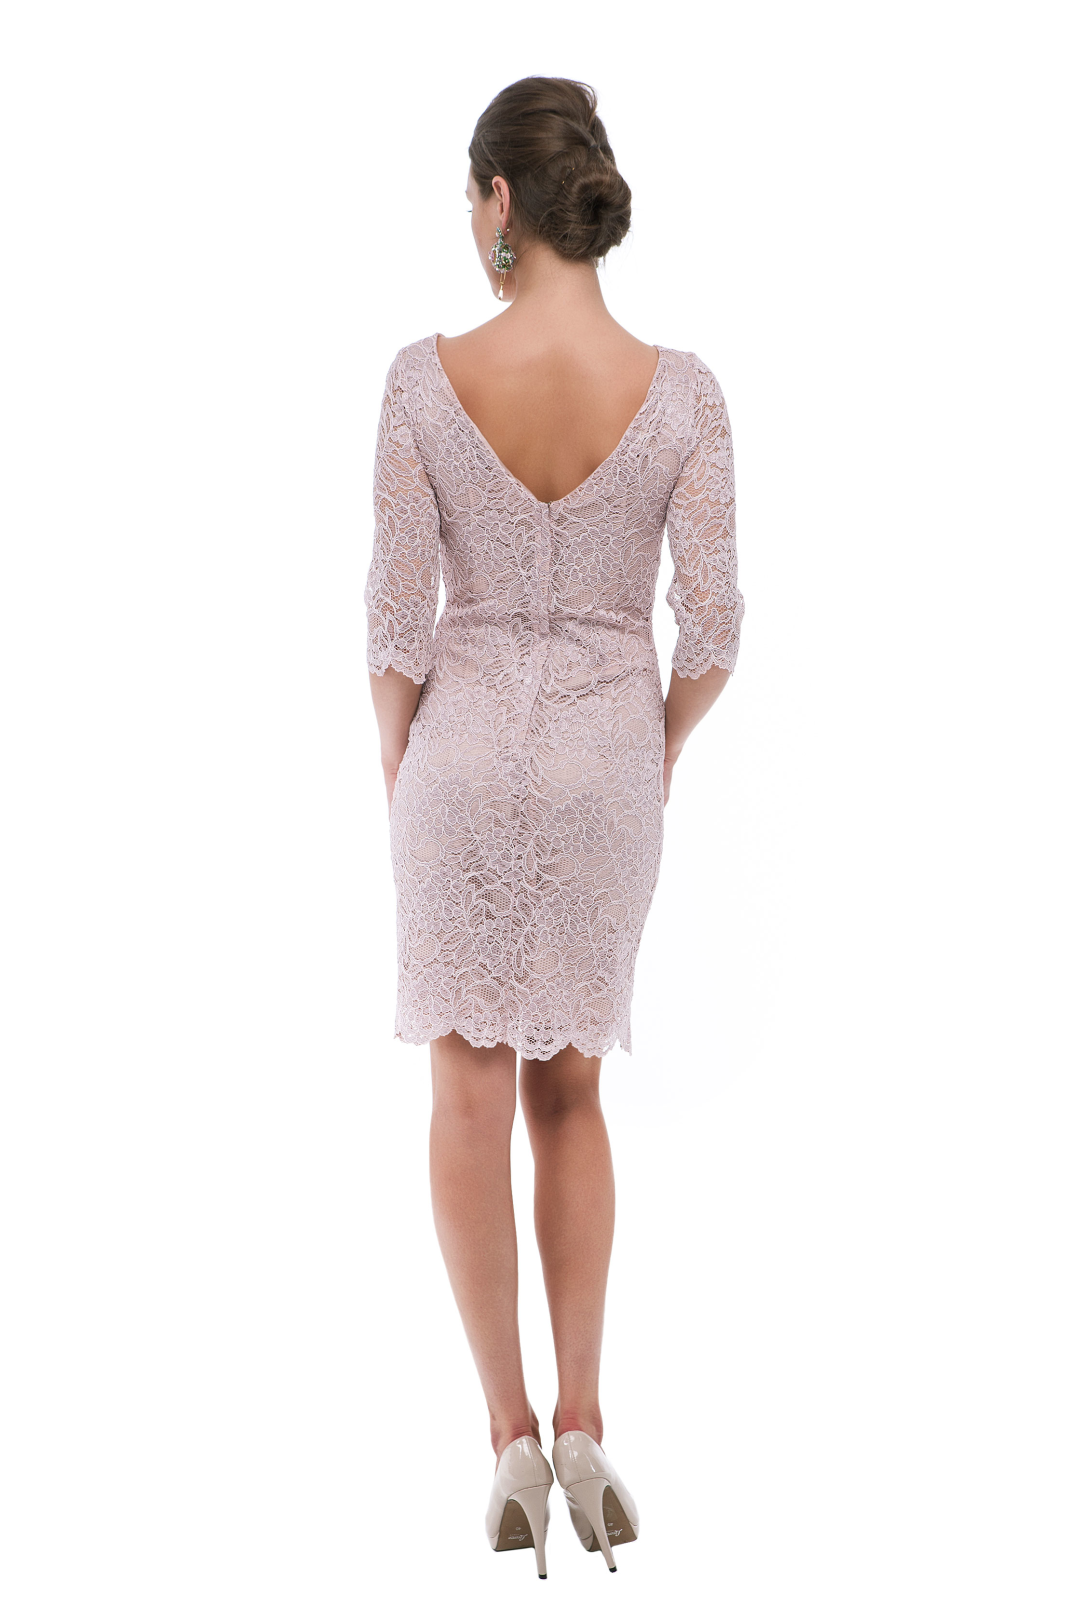 eed40b45dfe6b RENT BOUTIQUE / Pink Poema In Lace Dress